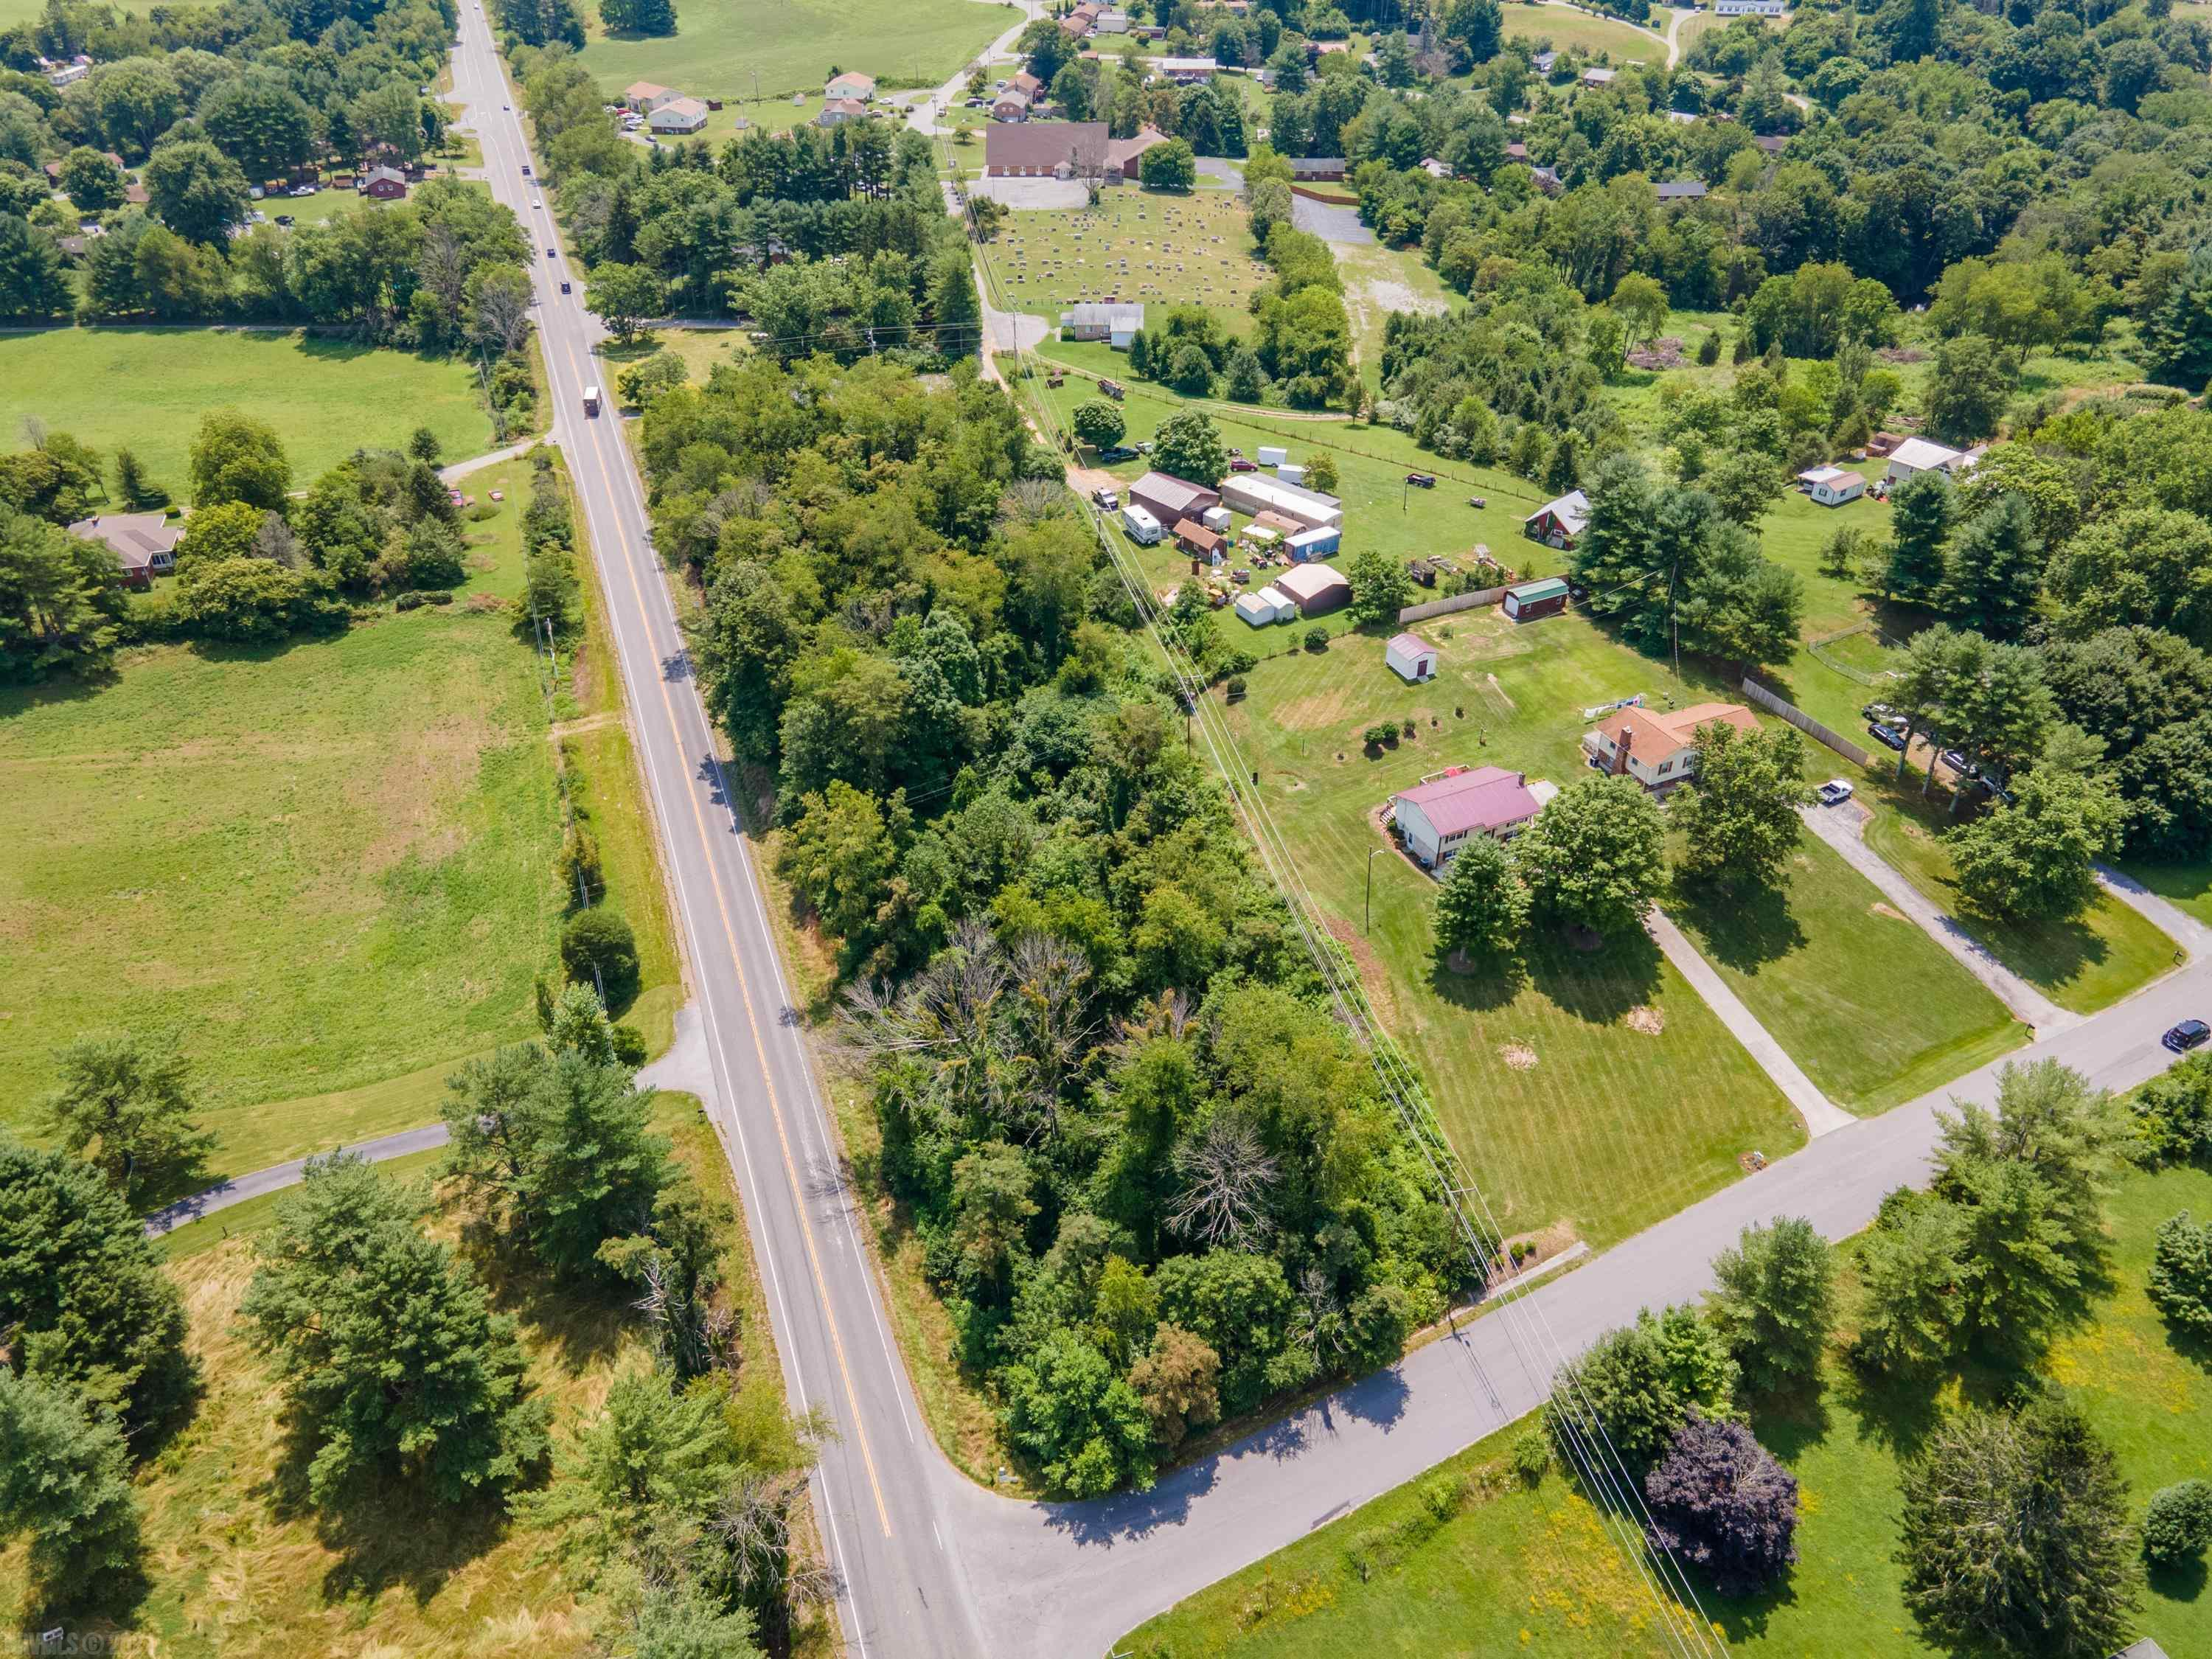 Great opportunity to purchase a 1.783 acre lot on the corner of Peppers Ferry Road and Rolling Hills Drive in Christiansburg. The parcel has 576 ft. of prime road frontage on Peppers Ferry and 122 ft on Rolling Hills and is located just minutes from Virginia Tech and Radford University.  A new survey has been completed and the corners are marked. Excellent location for convenience and visibility.